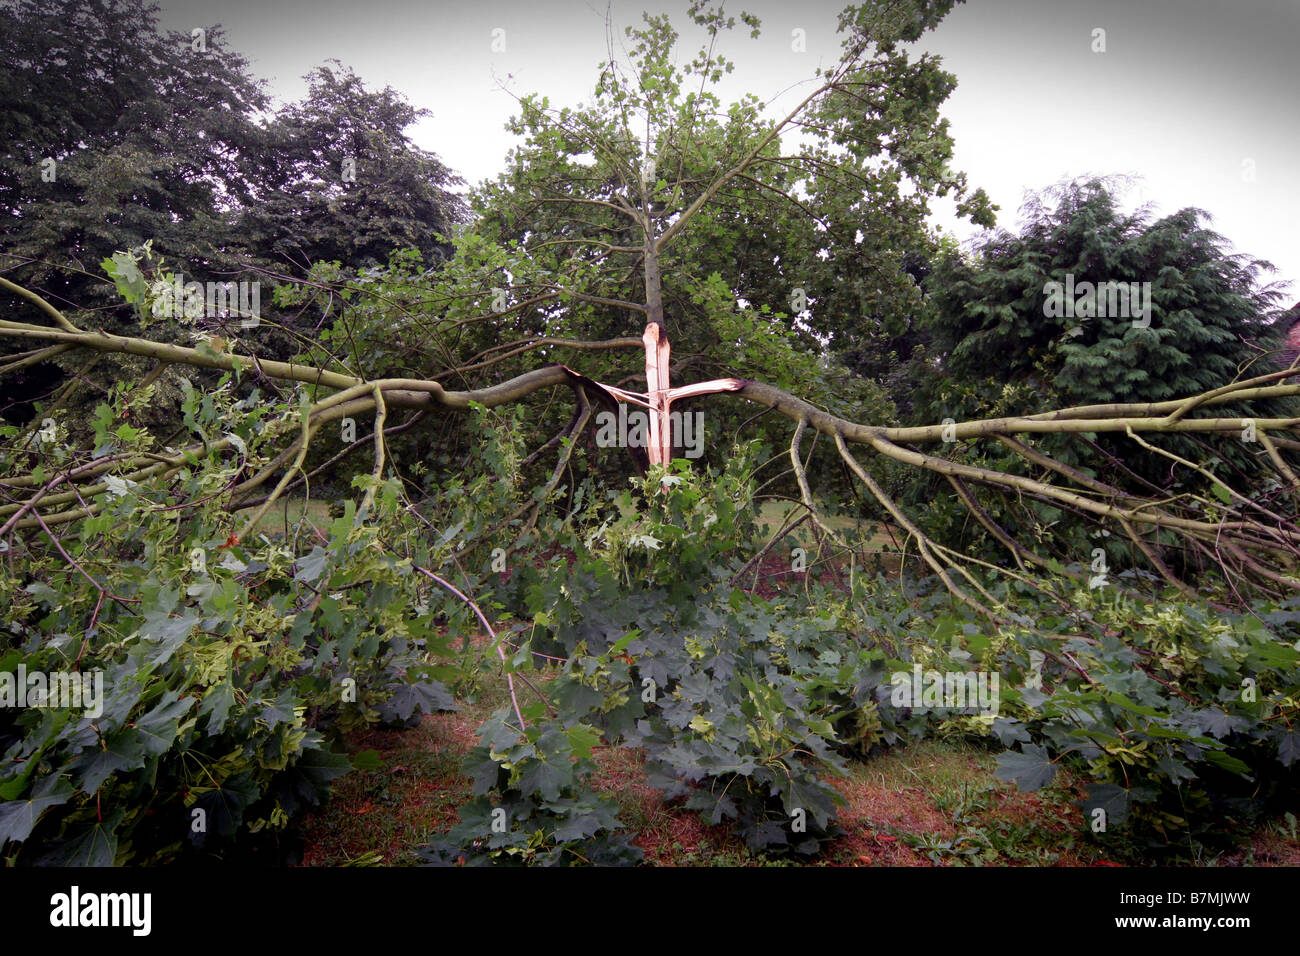 Tree in Hunt Close Bicester gets hit by lightning after heavy thunder storms 2006 - Stock Image